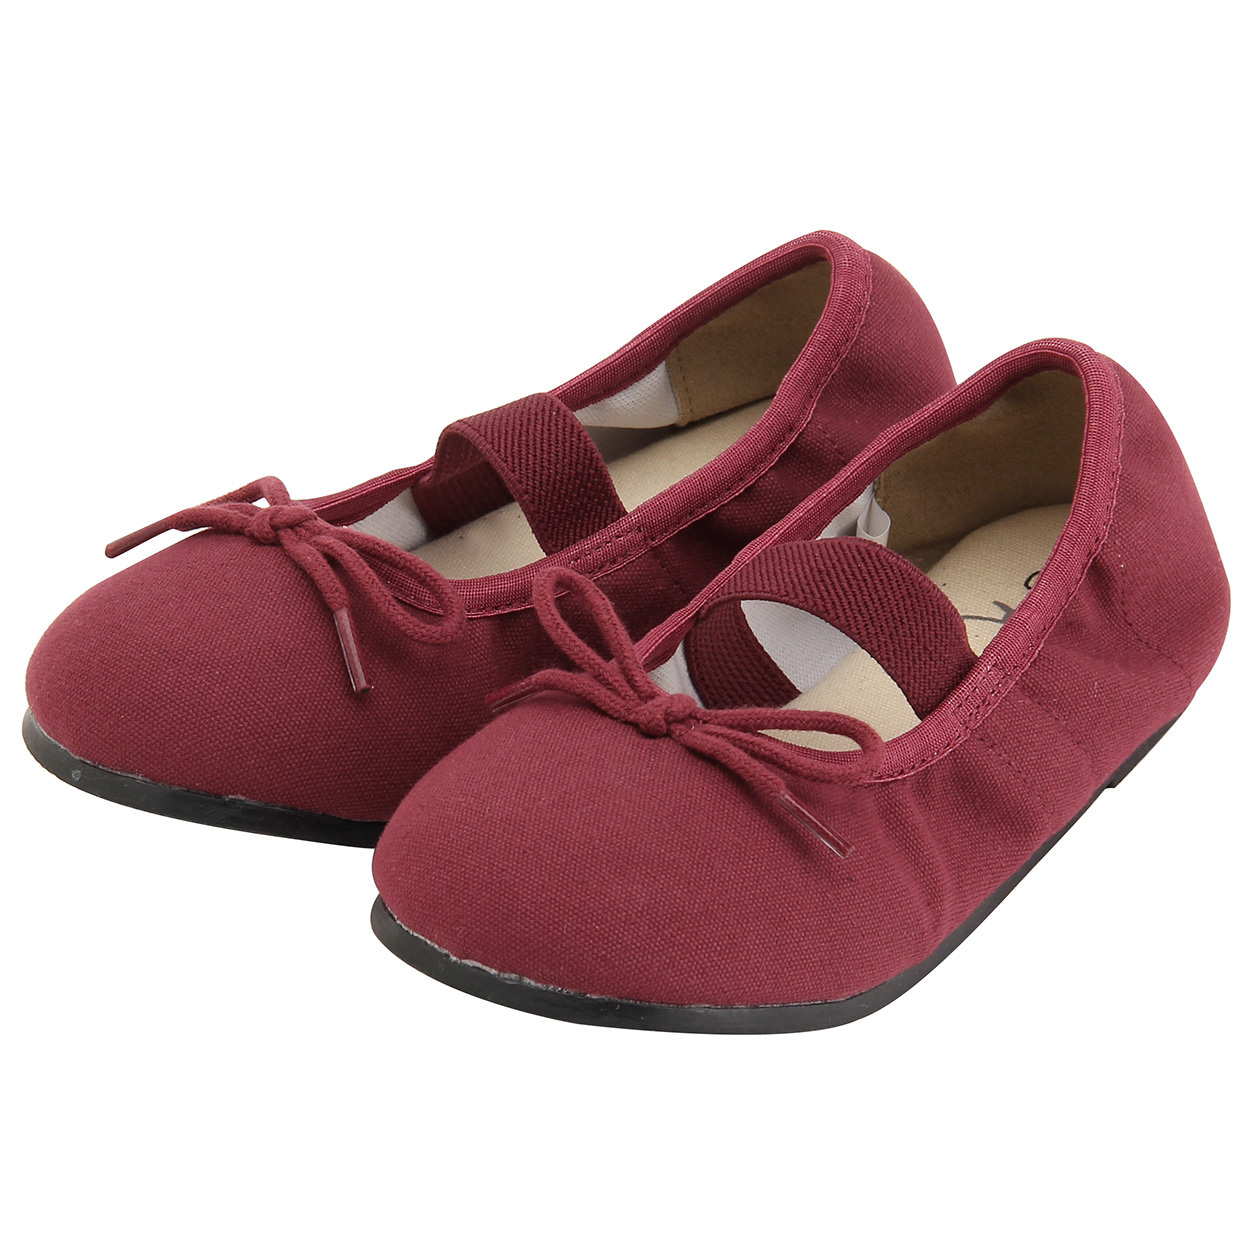 344adf7239c8c BALLET SHOES (BABY) BABY 15cm RED | MUJI